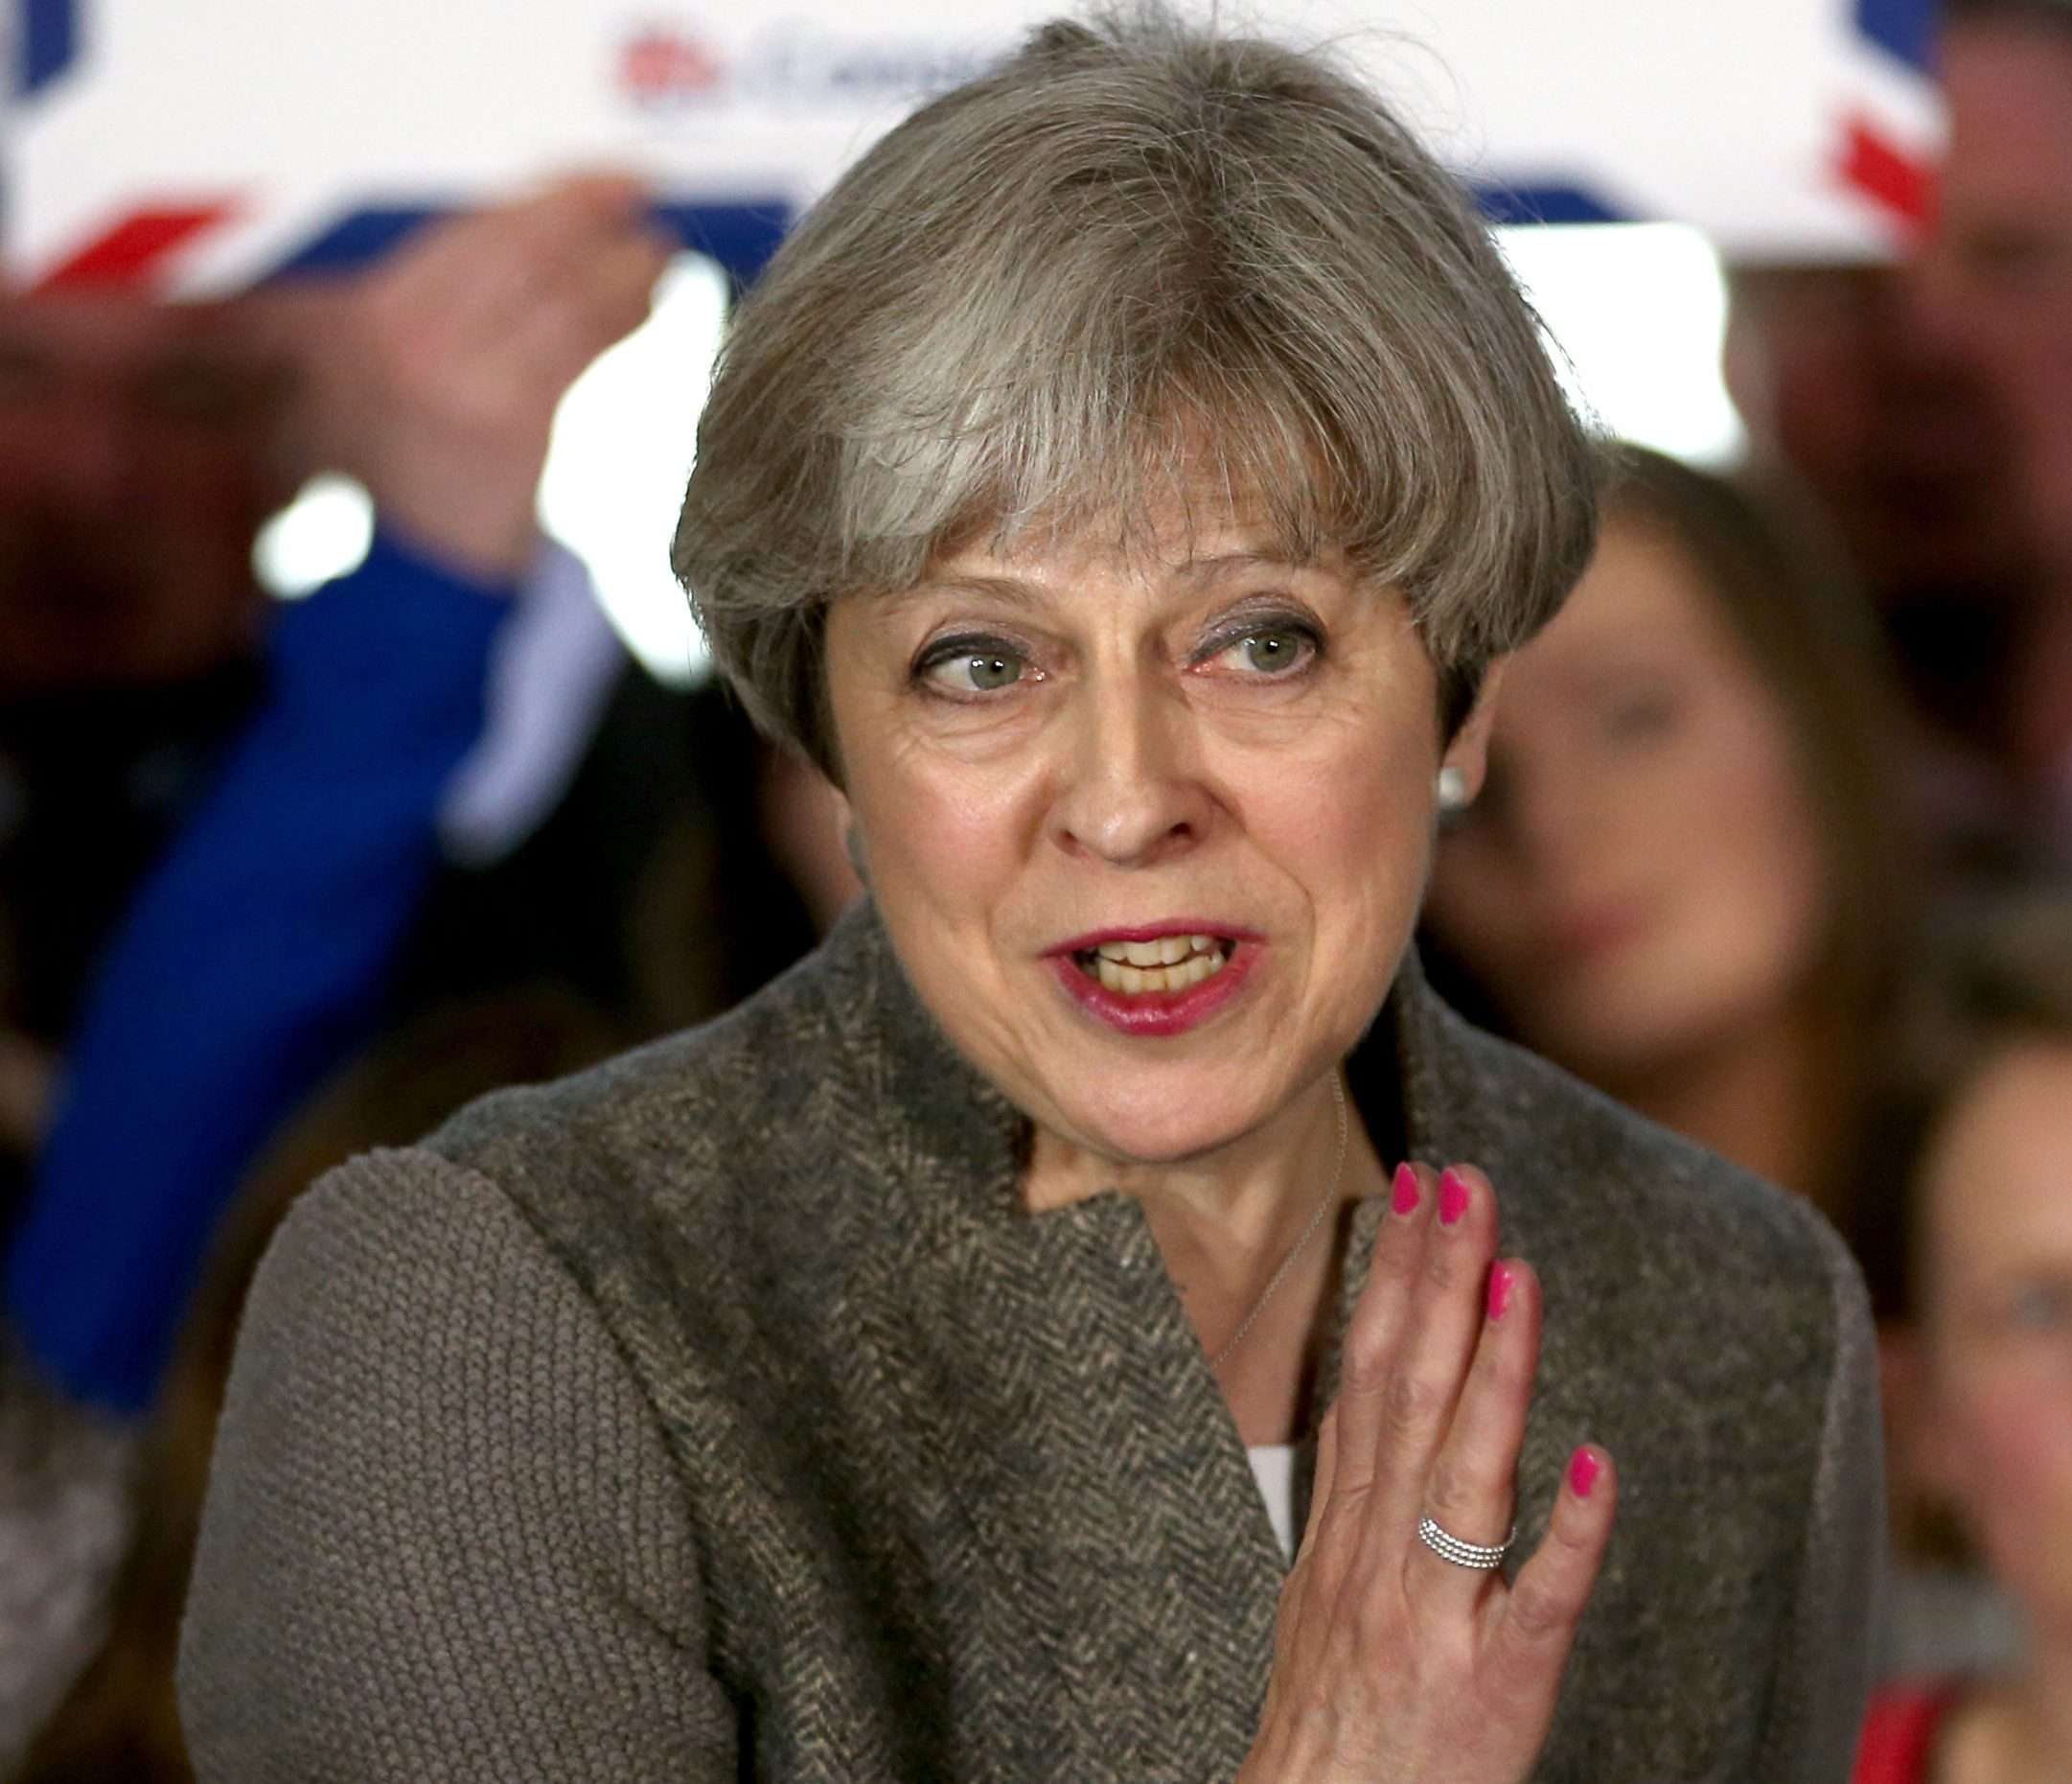 Prime Minister Theresa May delivers a speech while on the election campaign trail in the village of Crathes, Aberdeenshire (Jane Barlow/PA Wire)